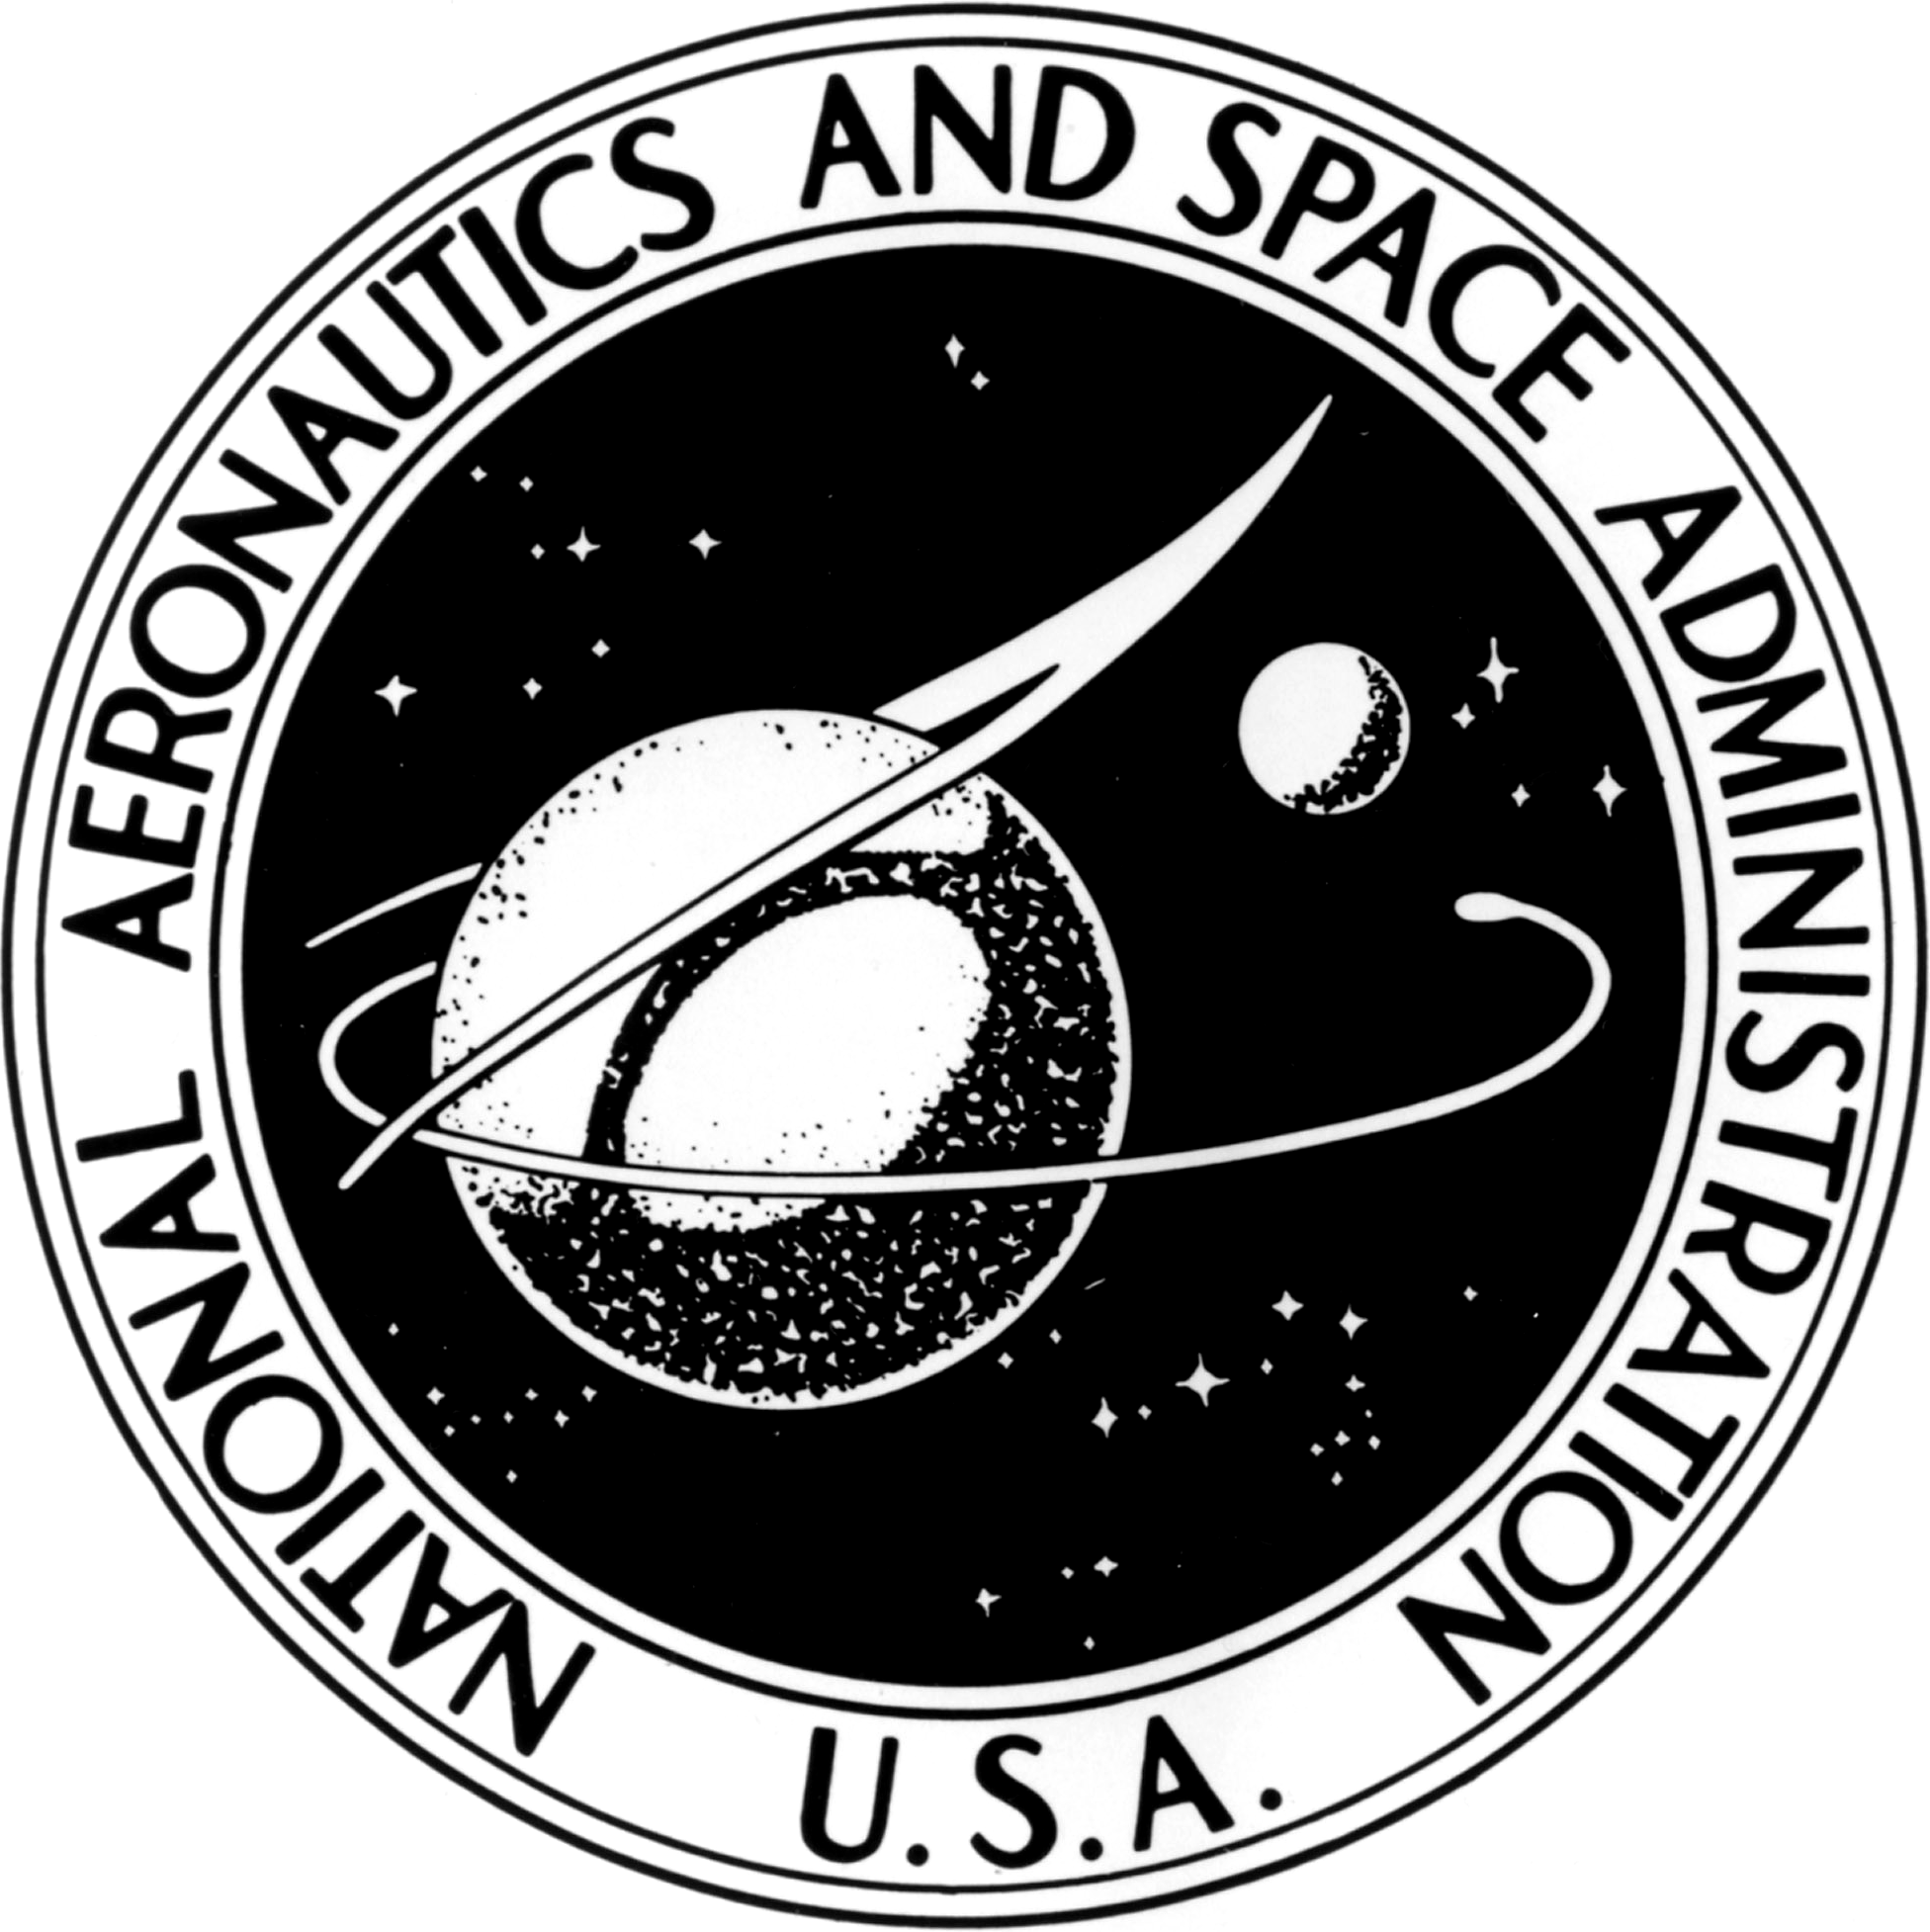 nasa emblem black and white - photo #1